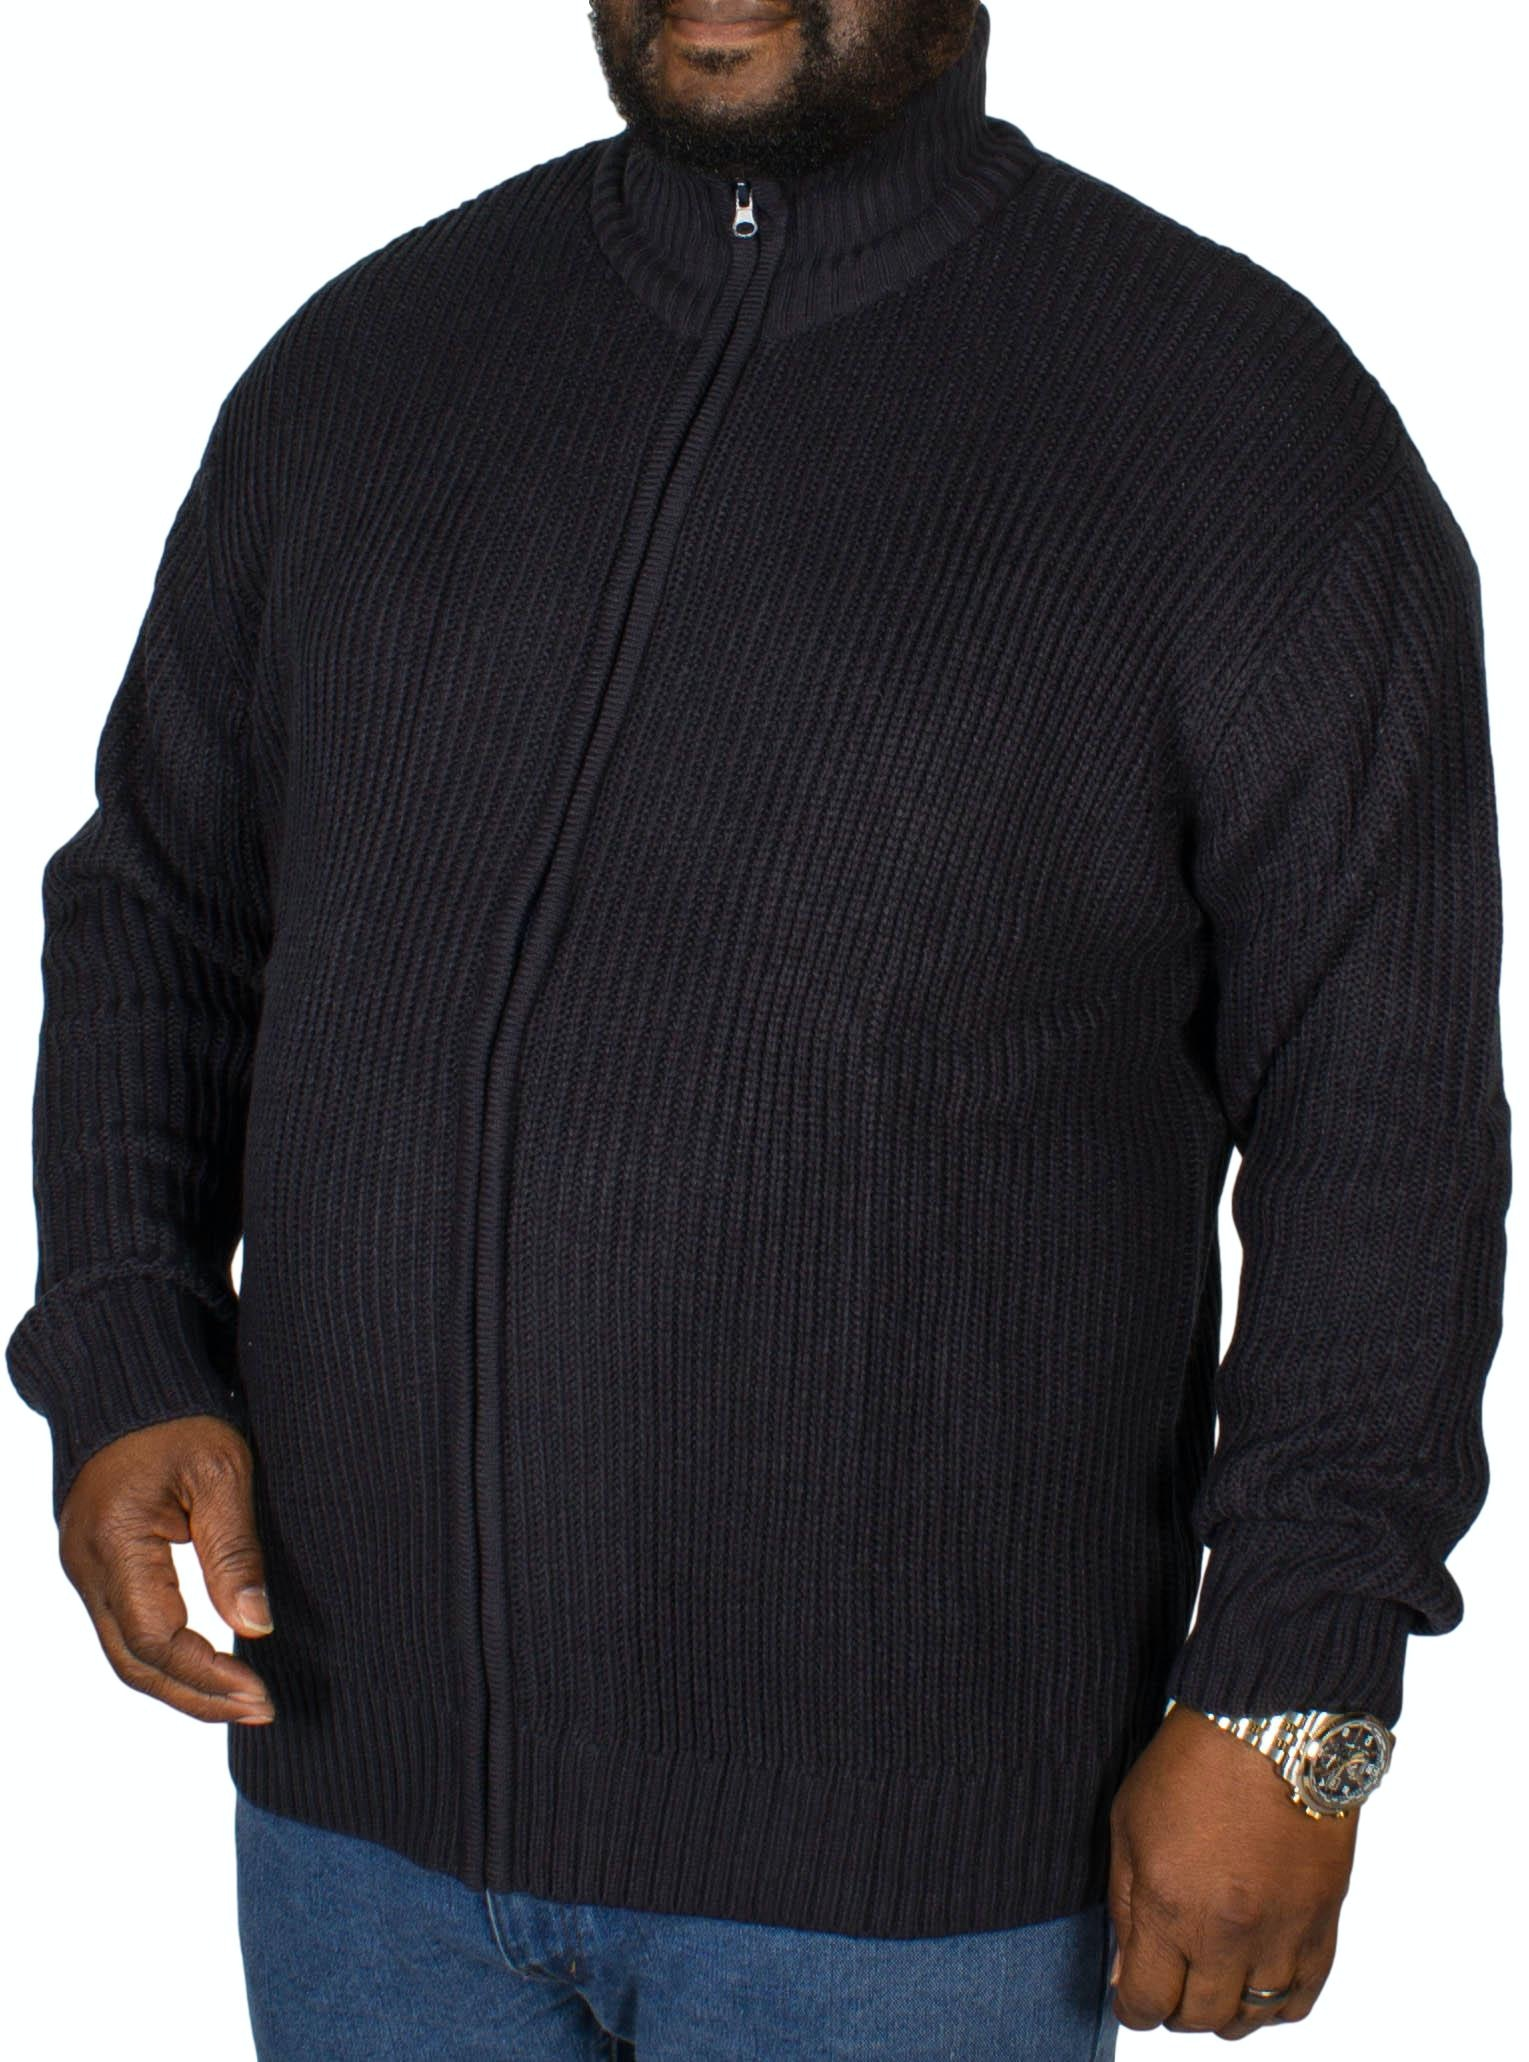 Metaphor Ribbed Zipped Knitted Sweater Navy